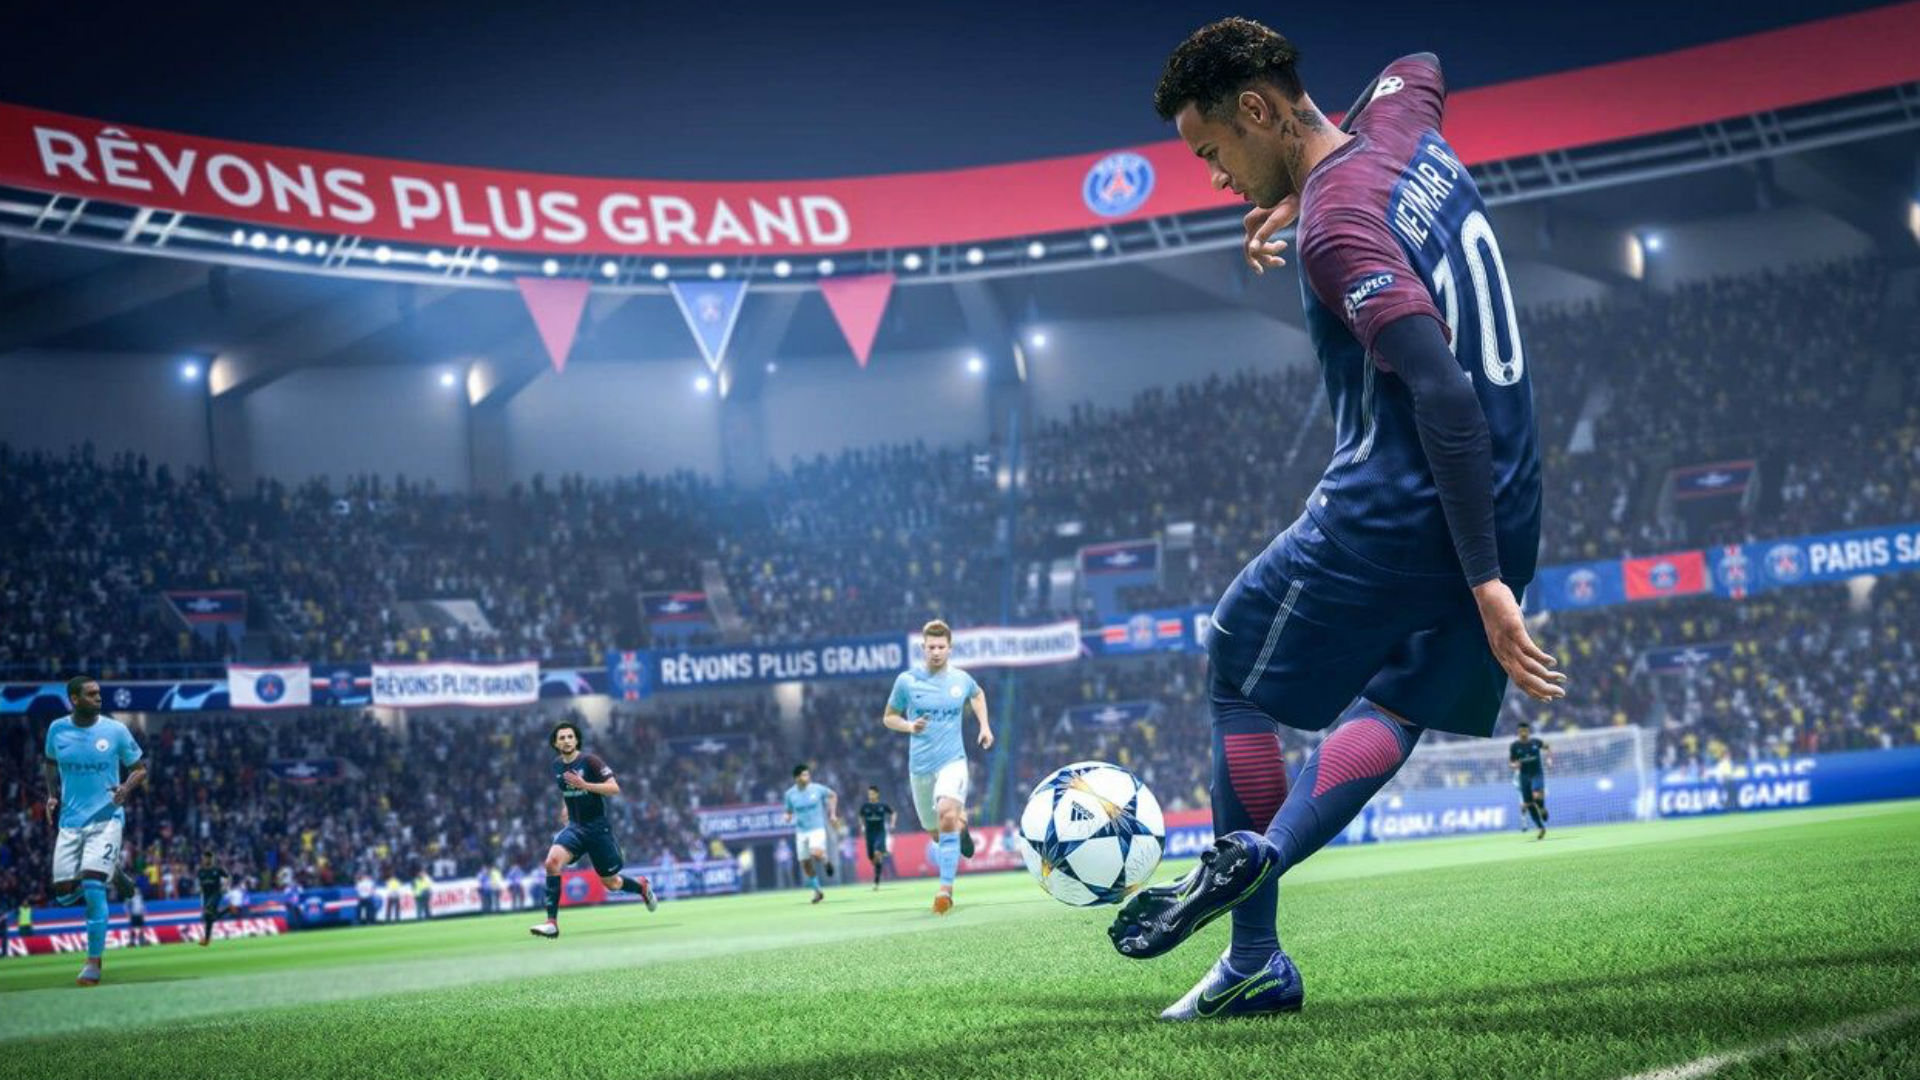 FIFA 20 out now: New features, Ultimate Team, player ratings, cost to buy & more!